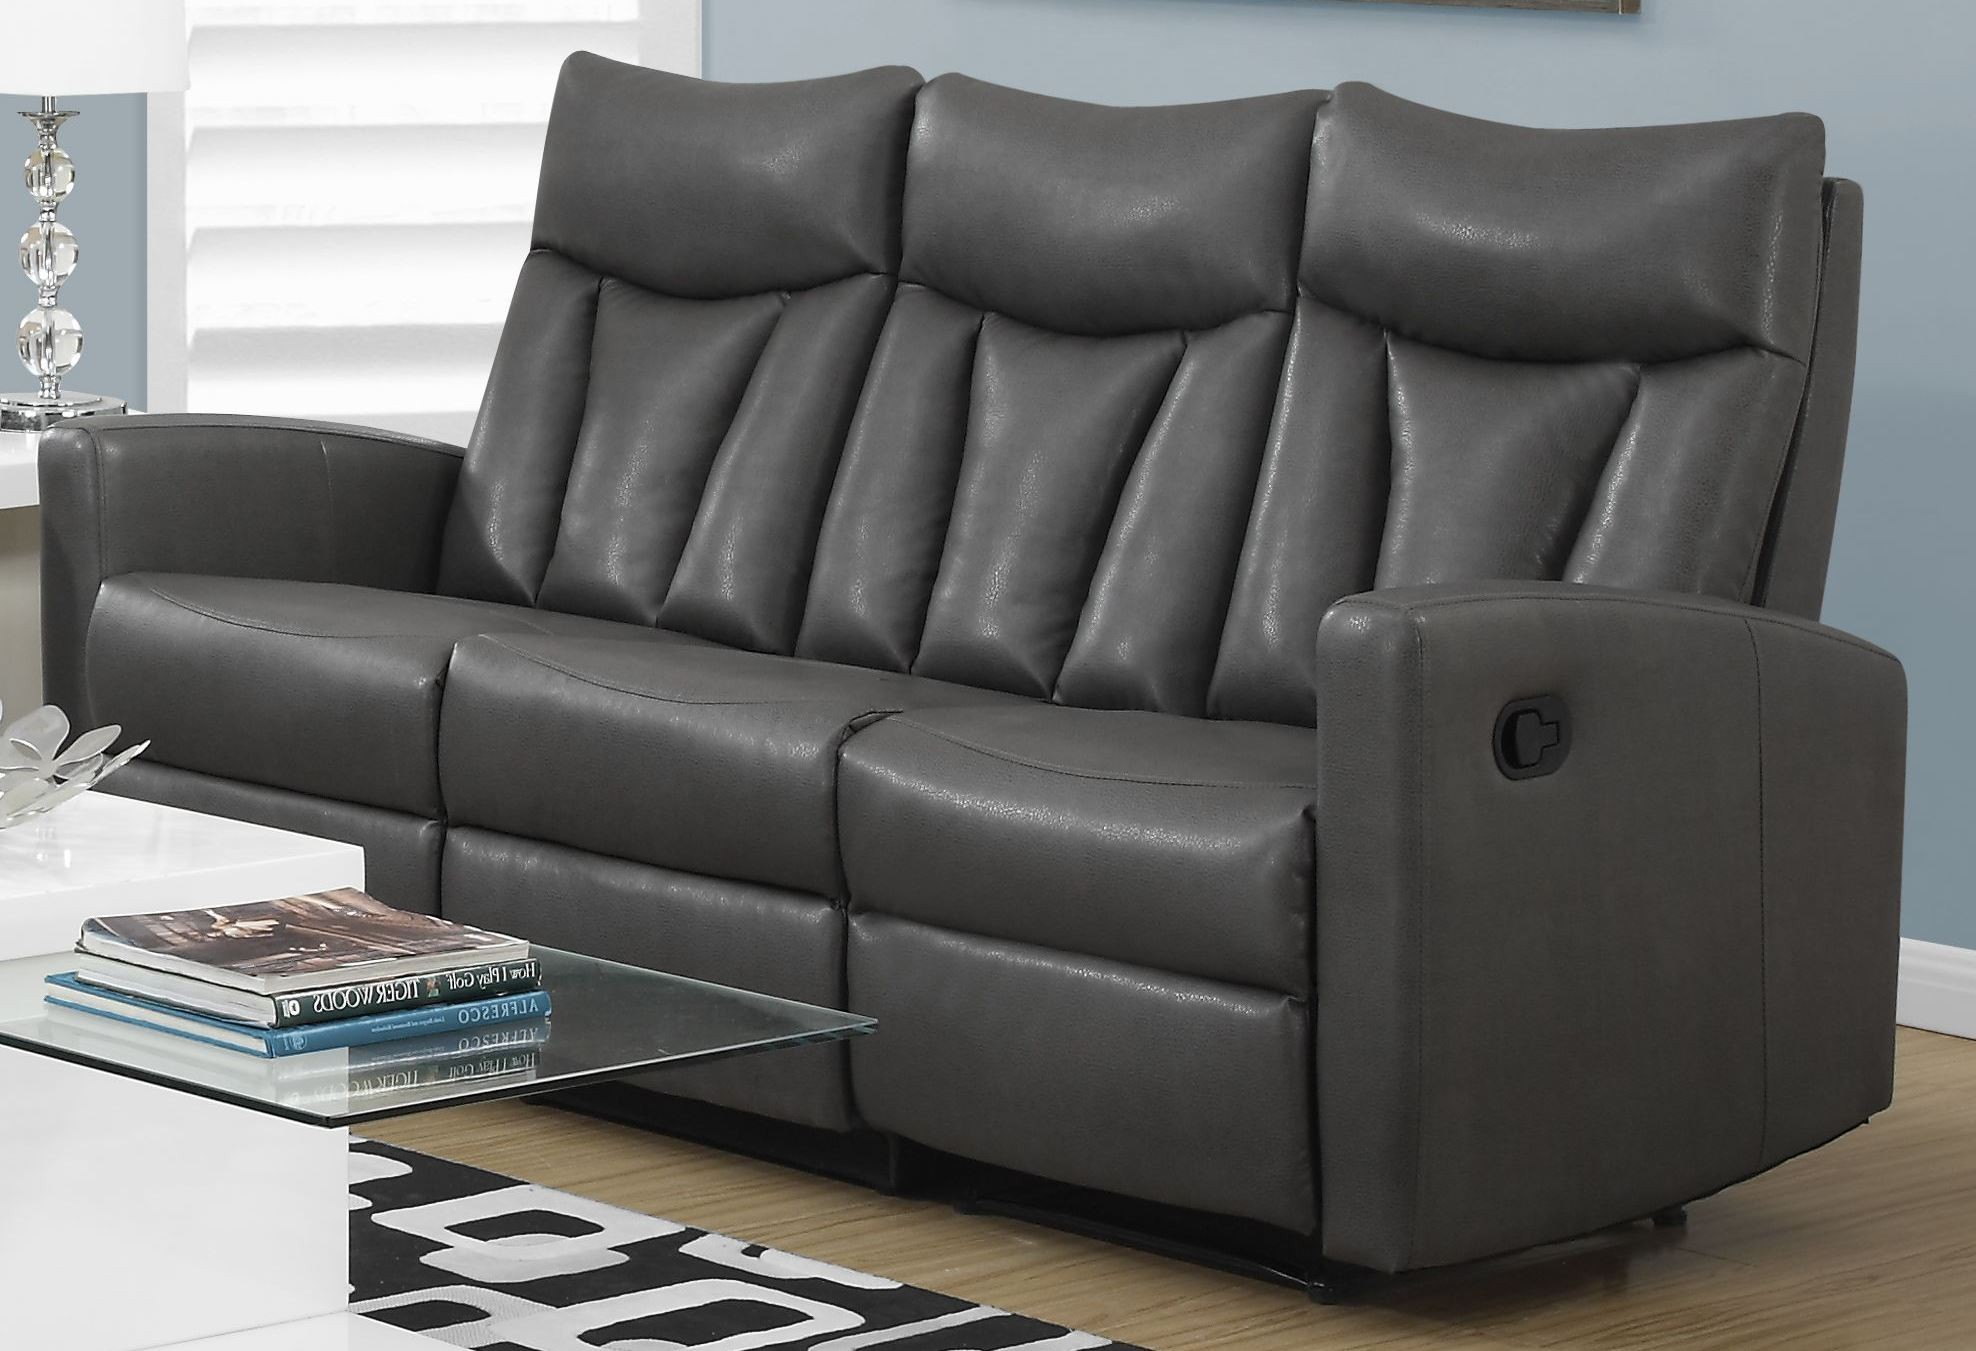 87gy 3 Charcoal Grey Bonded Leather Reclining Sofa 87gy 3